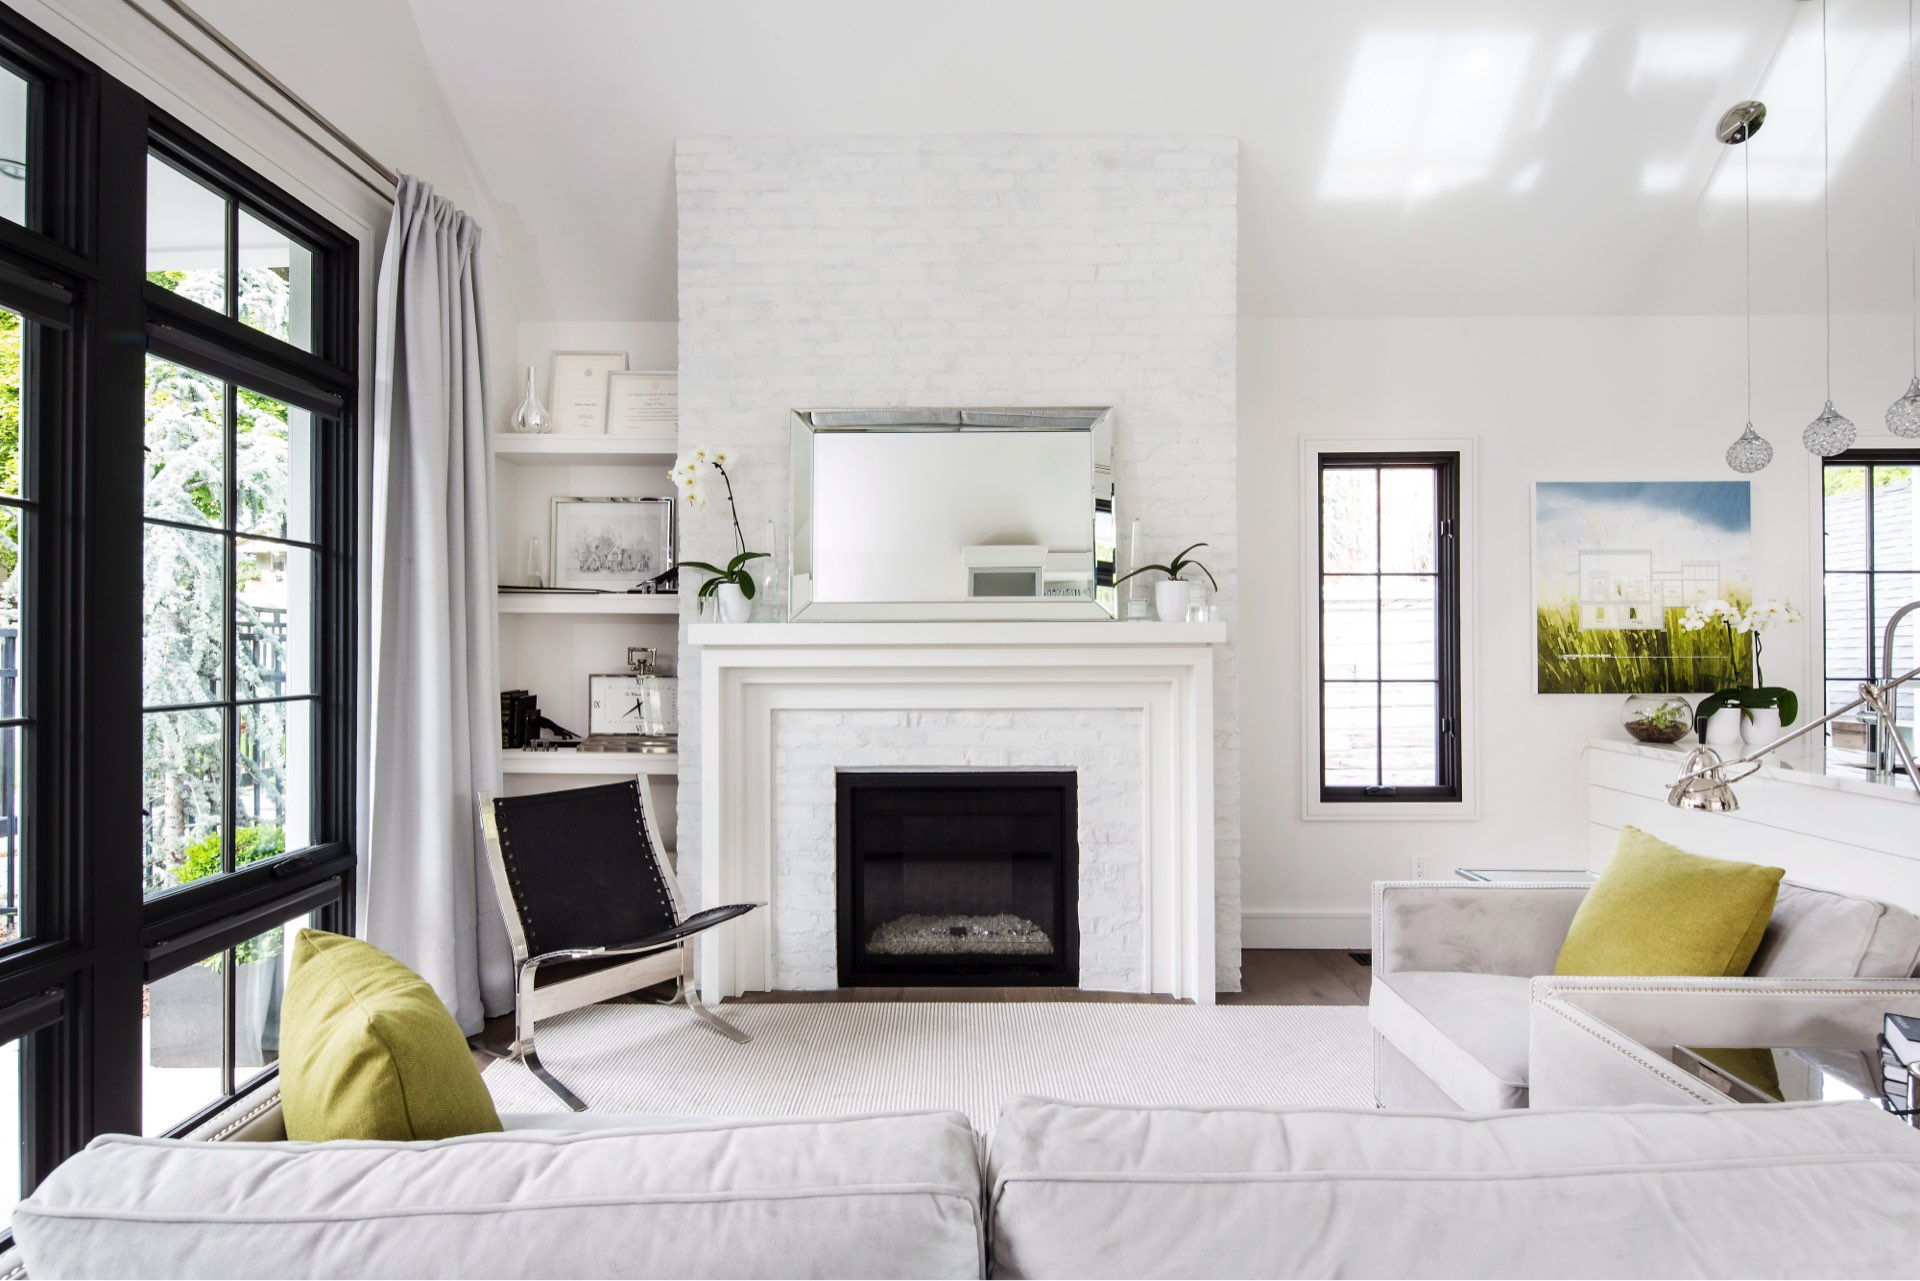 Living room, House 970, residential architectural design by Elliott Workgroup